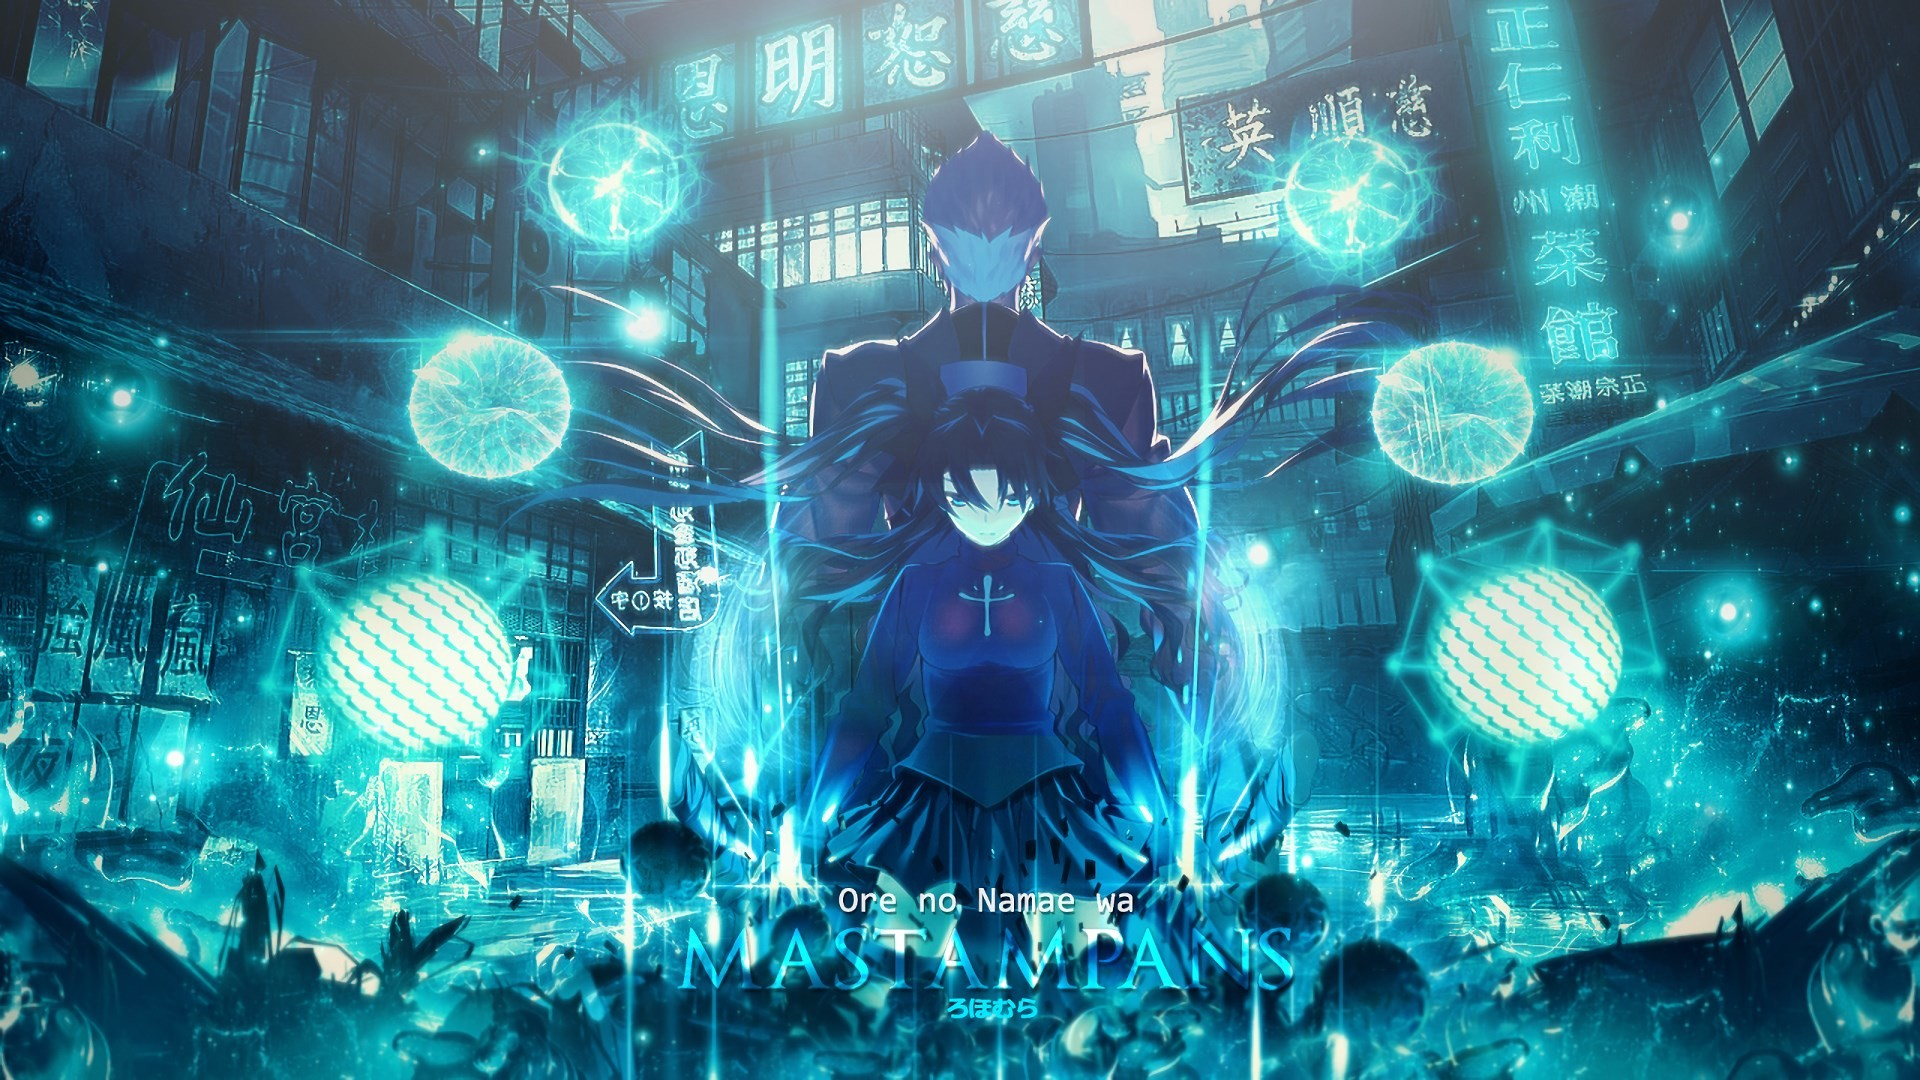 … fatestay night unlimited blade works wallpapers and backgrounds …